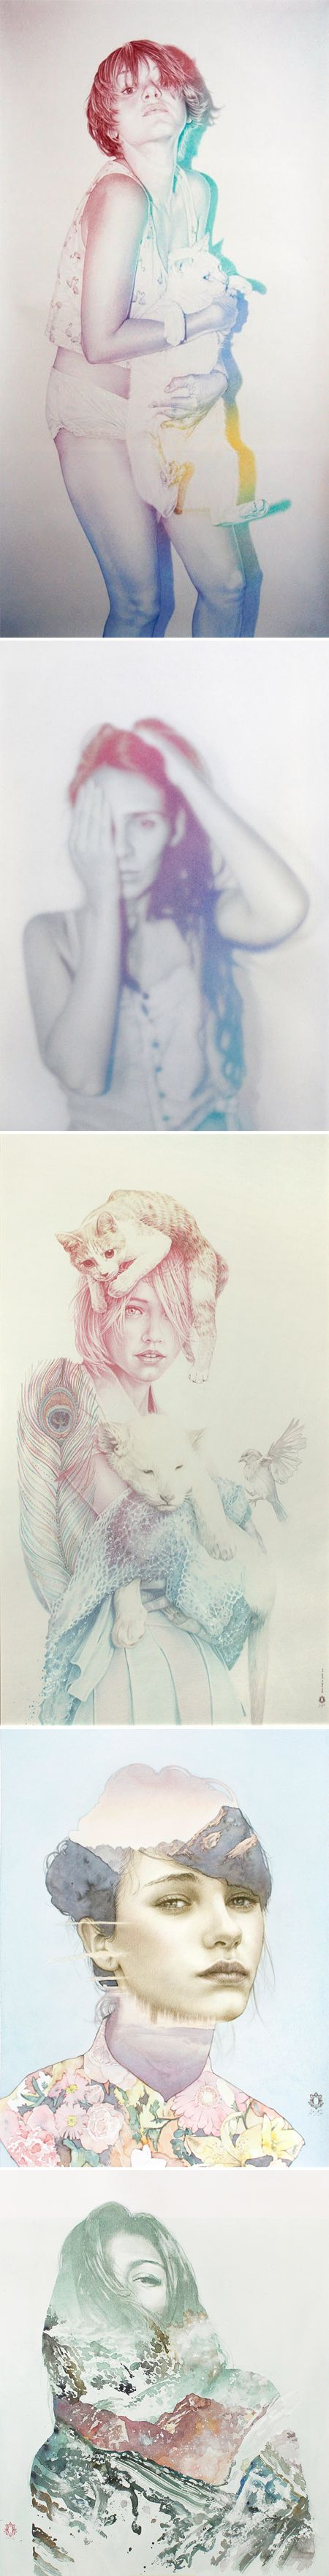 oriol angrill jorda - drawings with colored pencil. DRAWINGS?!